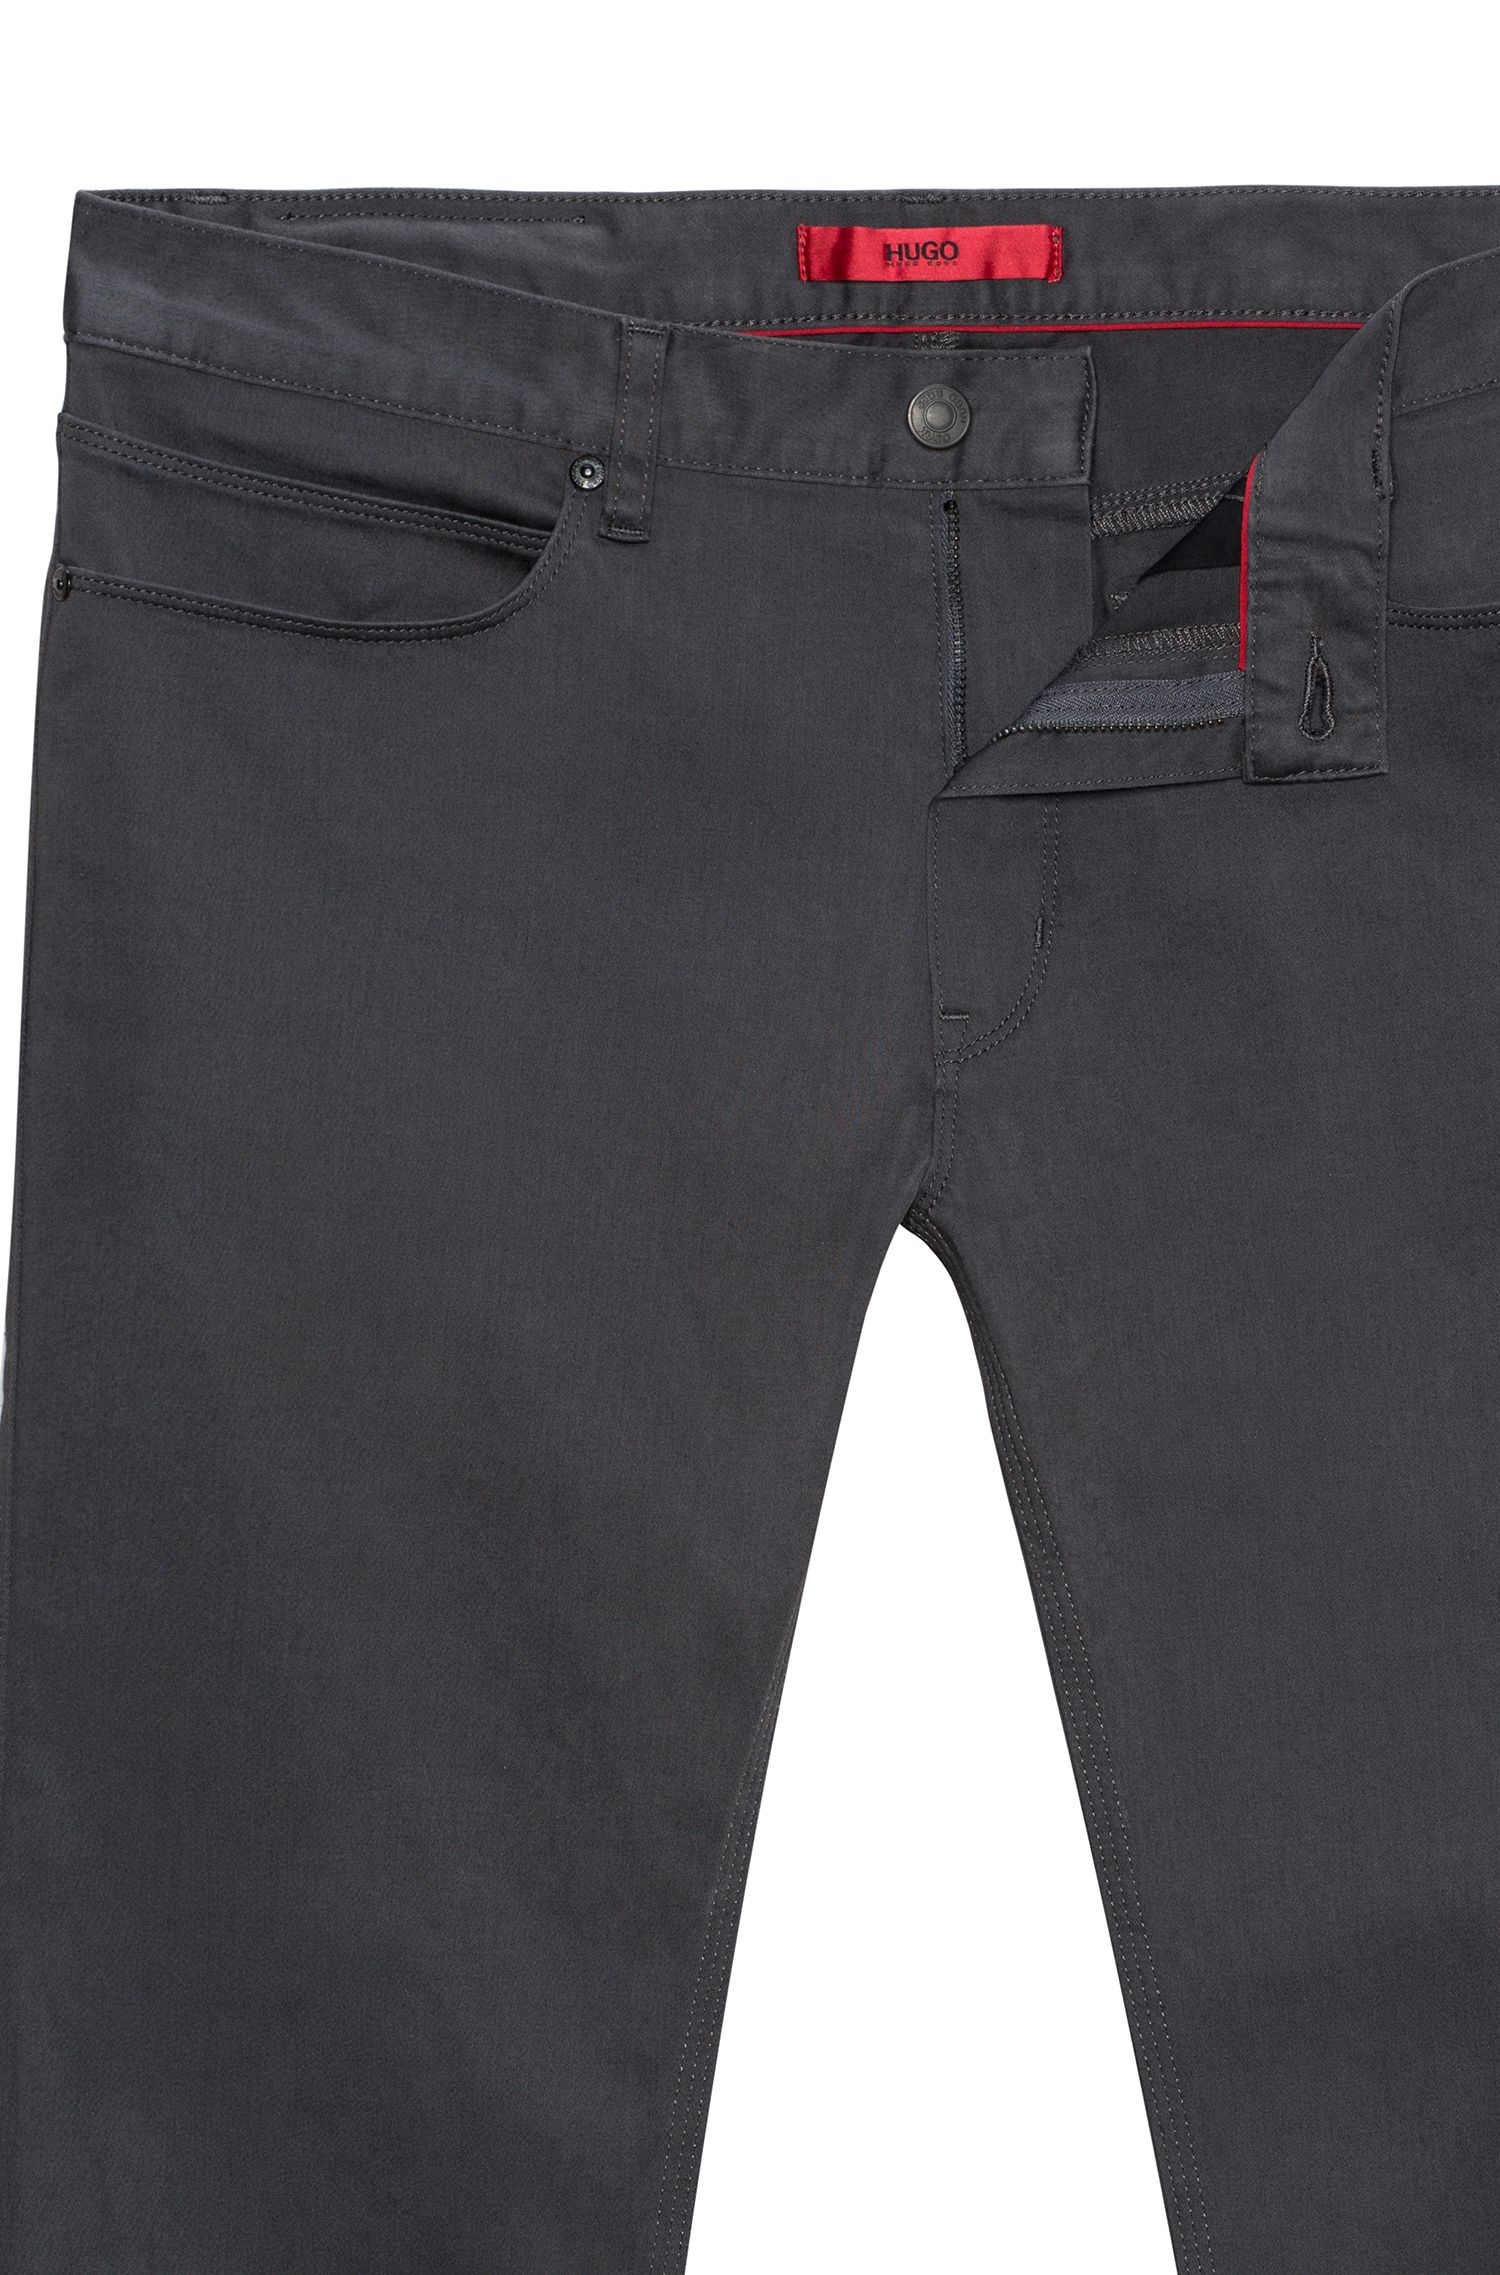 Jean Slim Fit noir en denim stretch